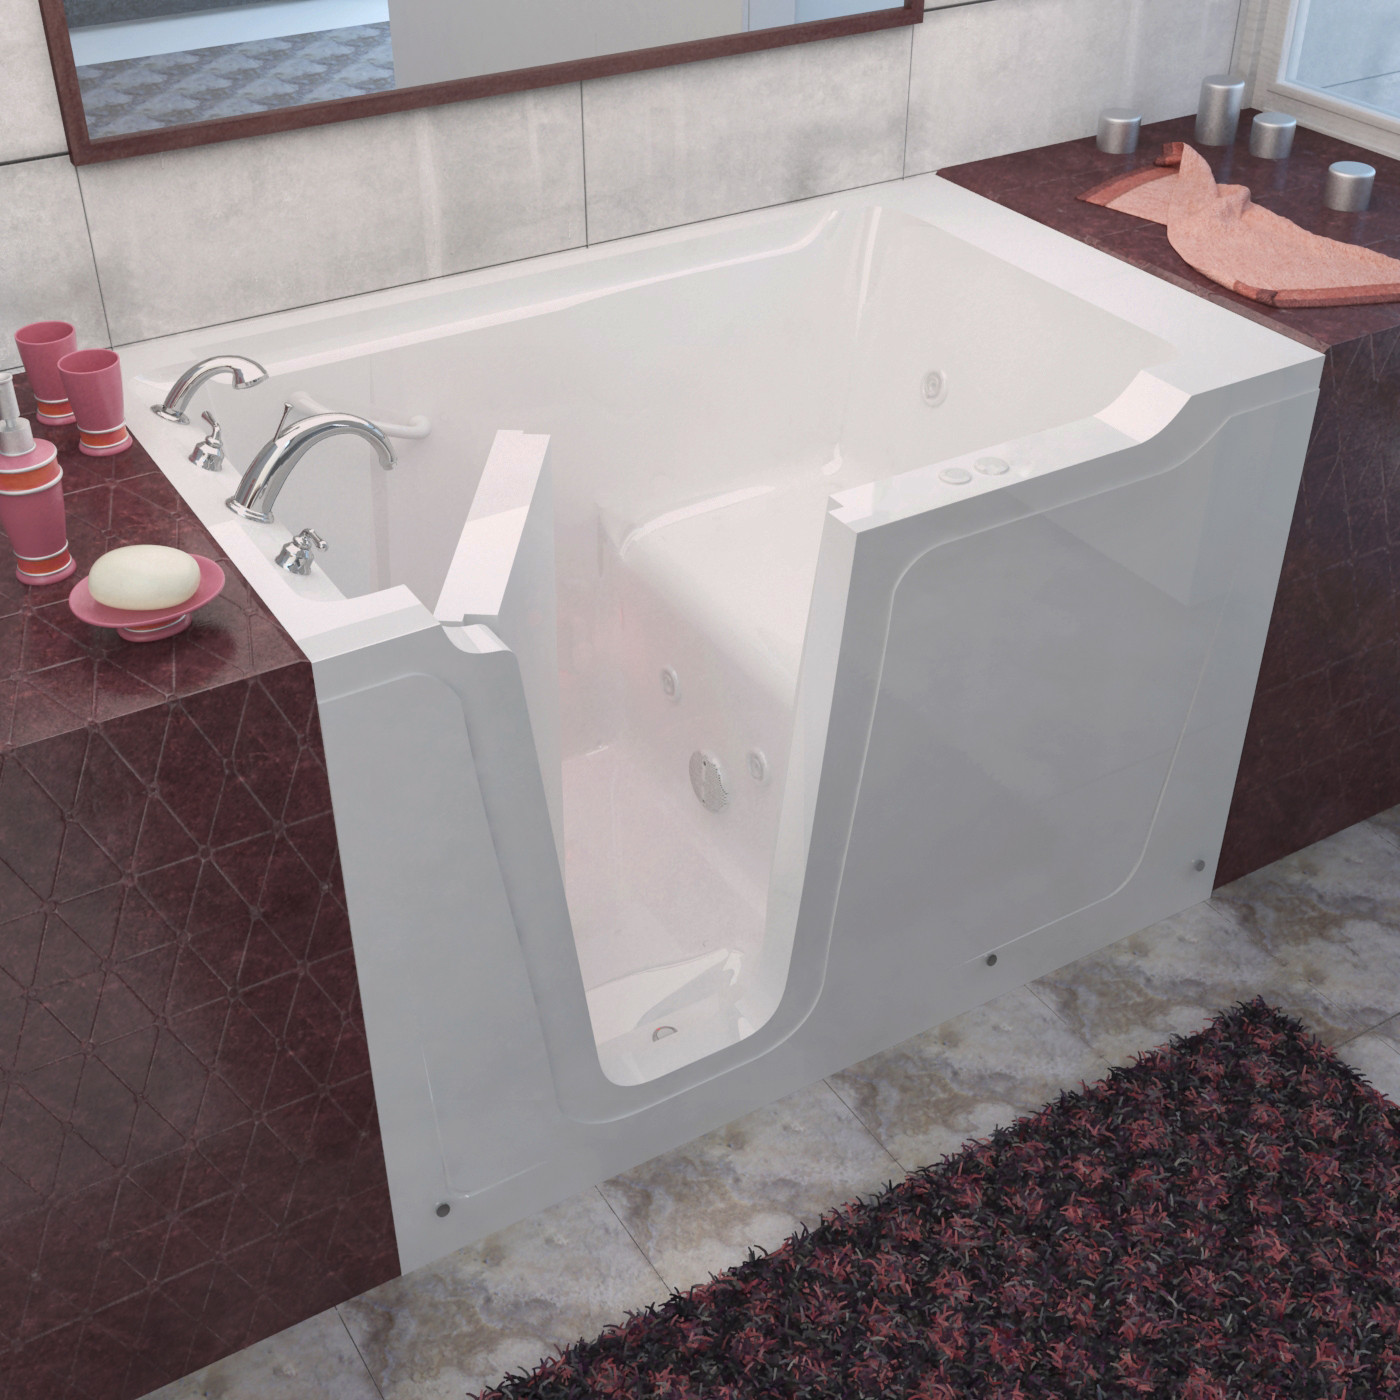 MediTub 3660LWH Walk-In 36 x 60 Left Drain White Whirlpool Jetted Bathtub